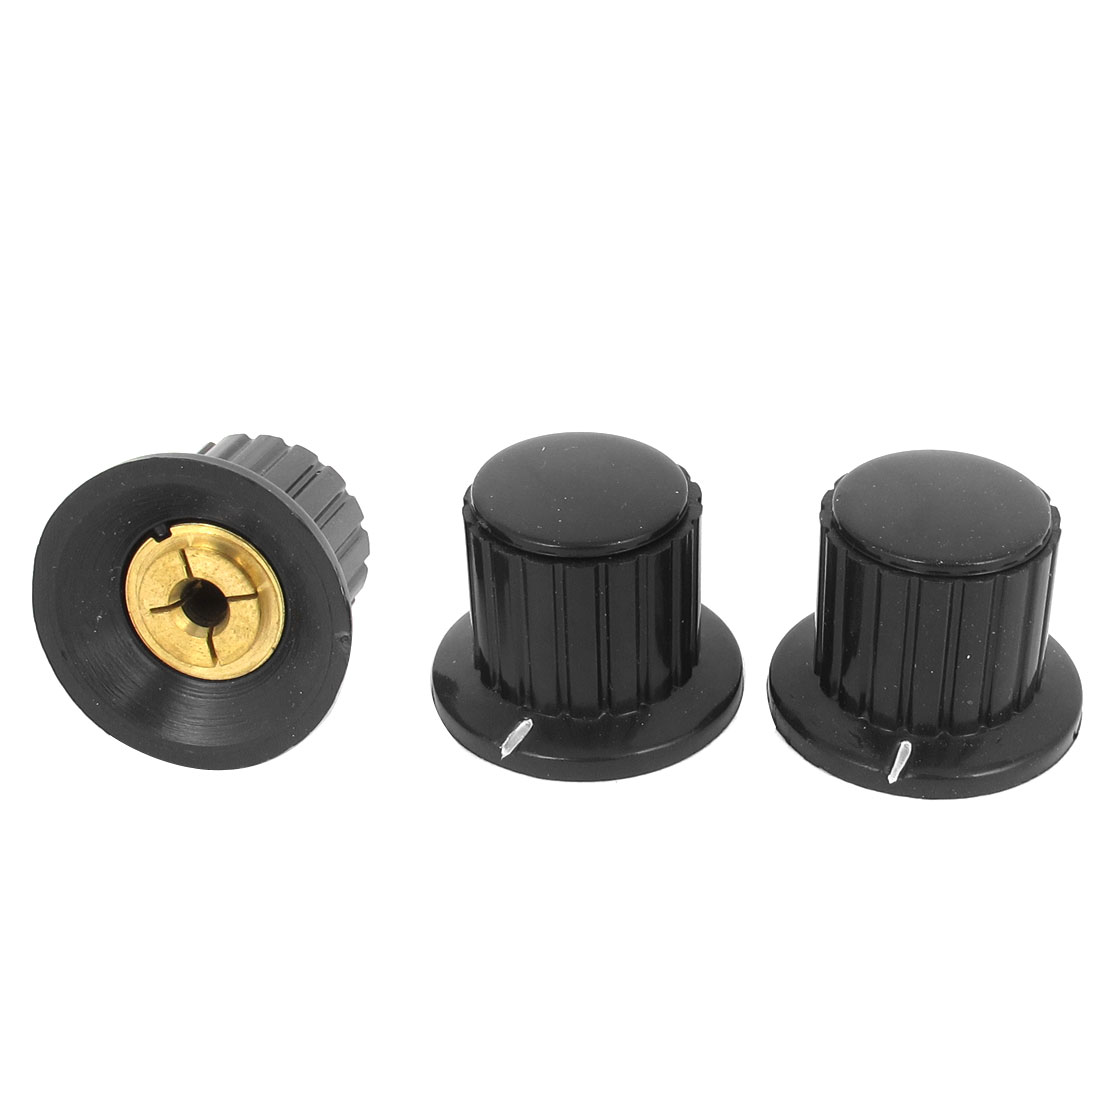 3 Pcs 4mm Shaft Insert Dia Brass Tone Core Potentiometer Control Knobs Black